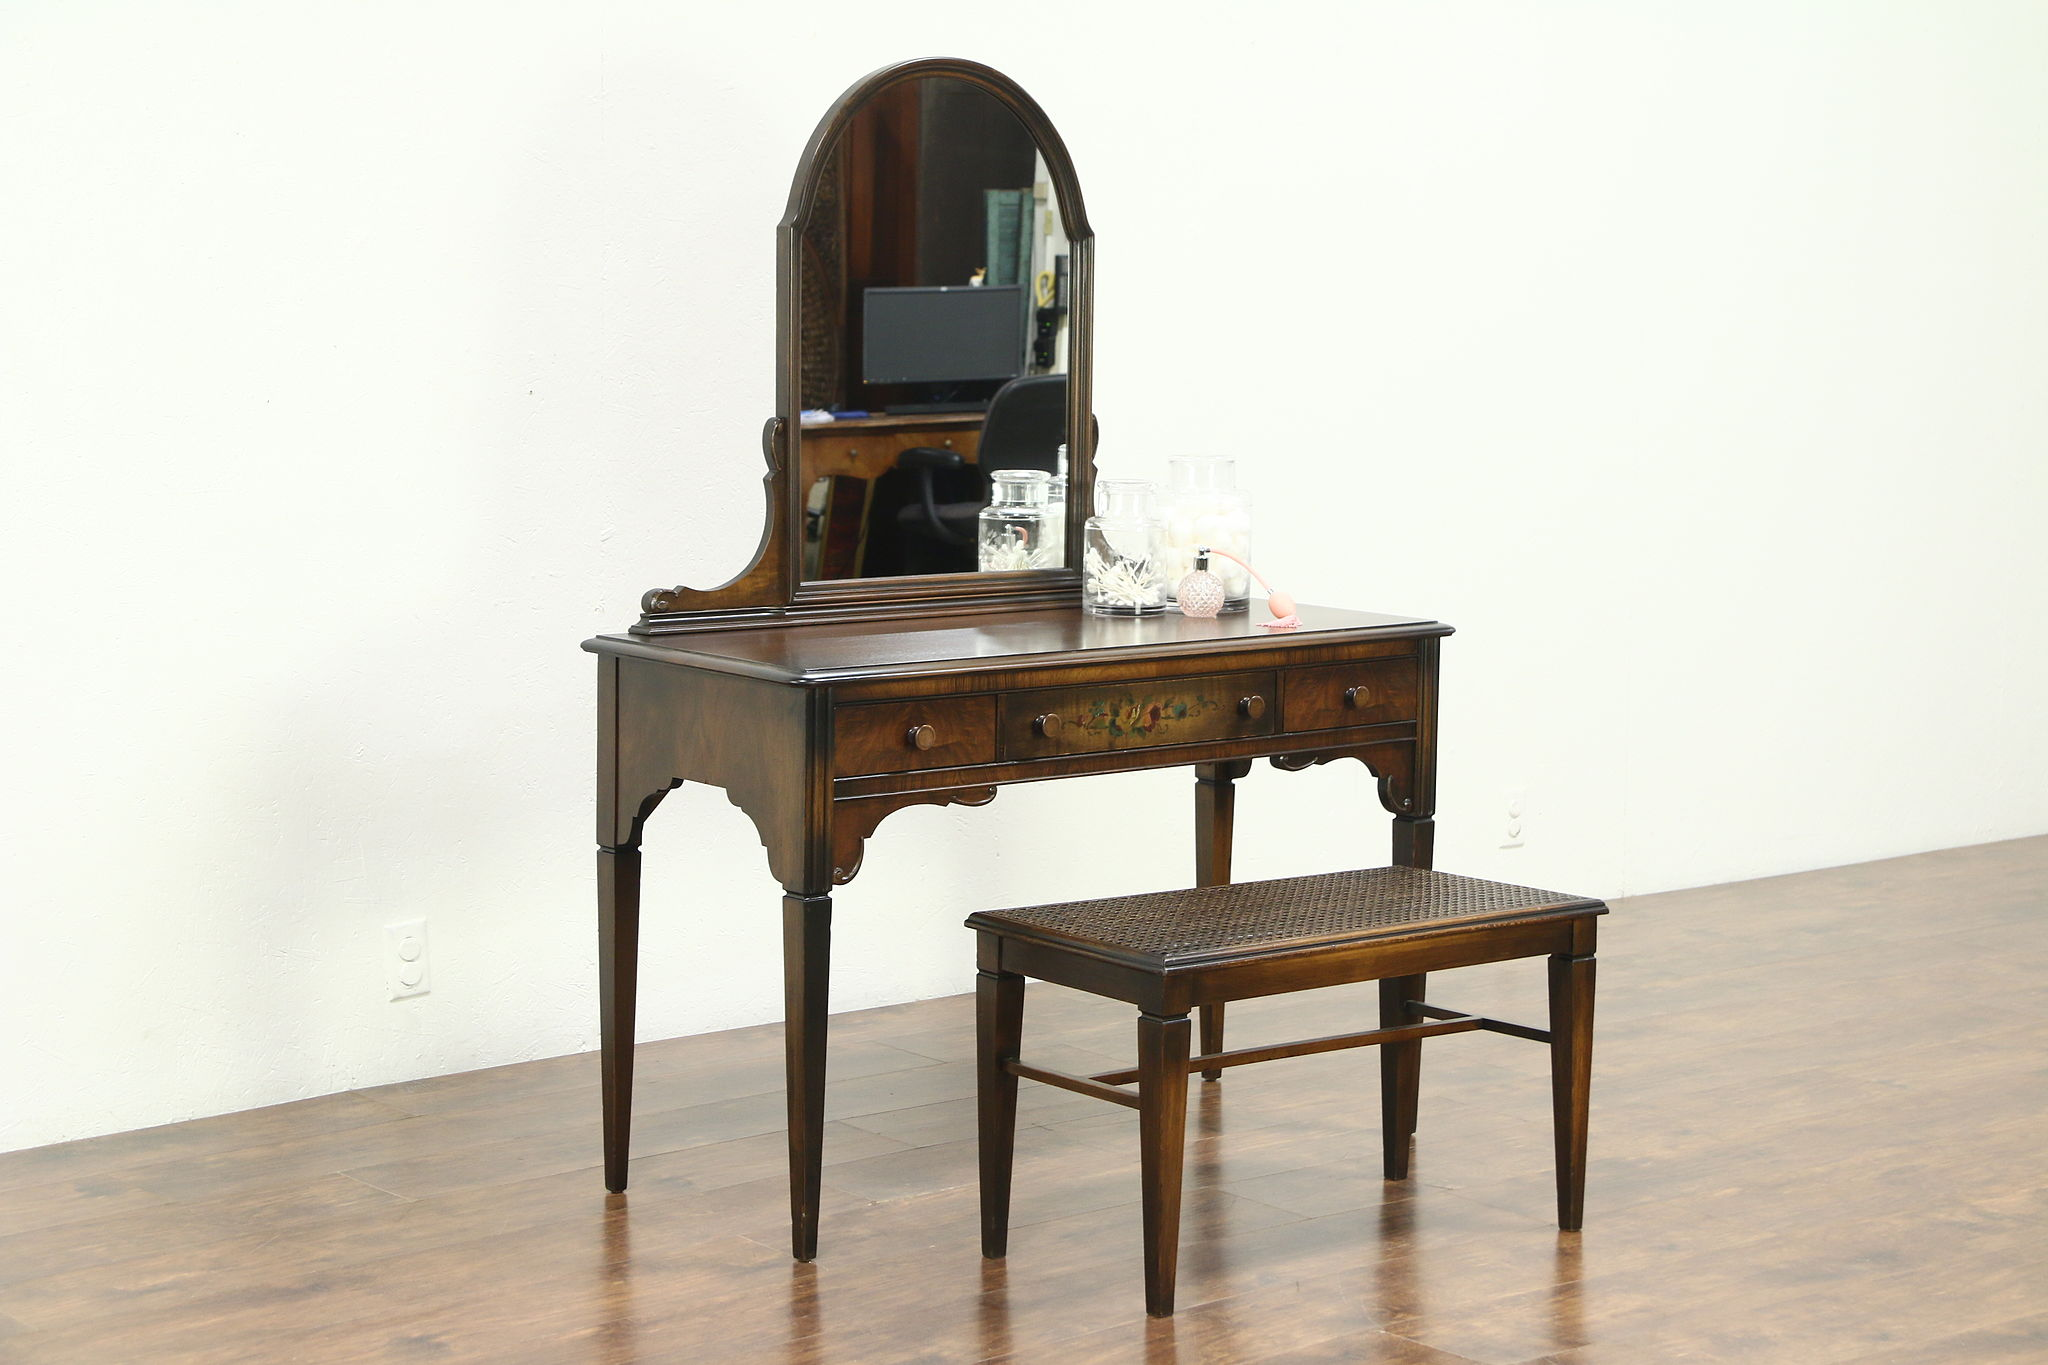 Sold Vanity Or Dressing Table Desk Amp Bench 1930 Vintage